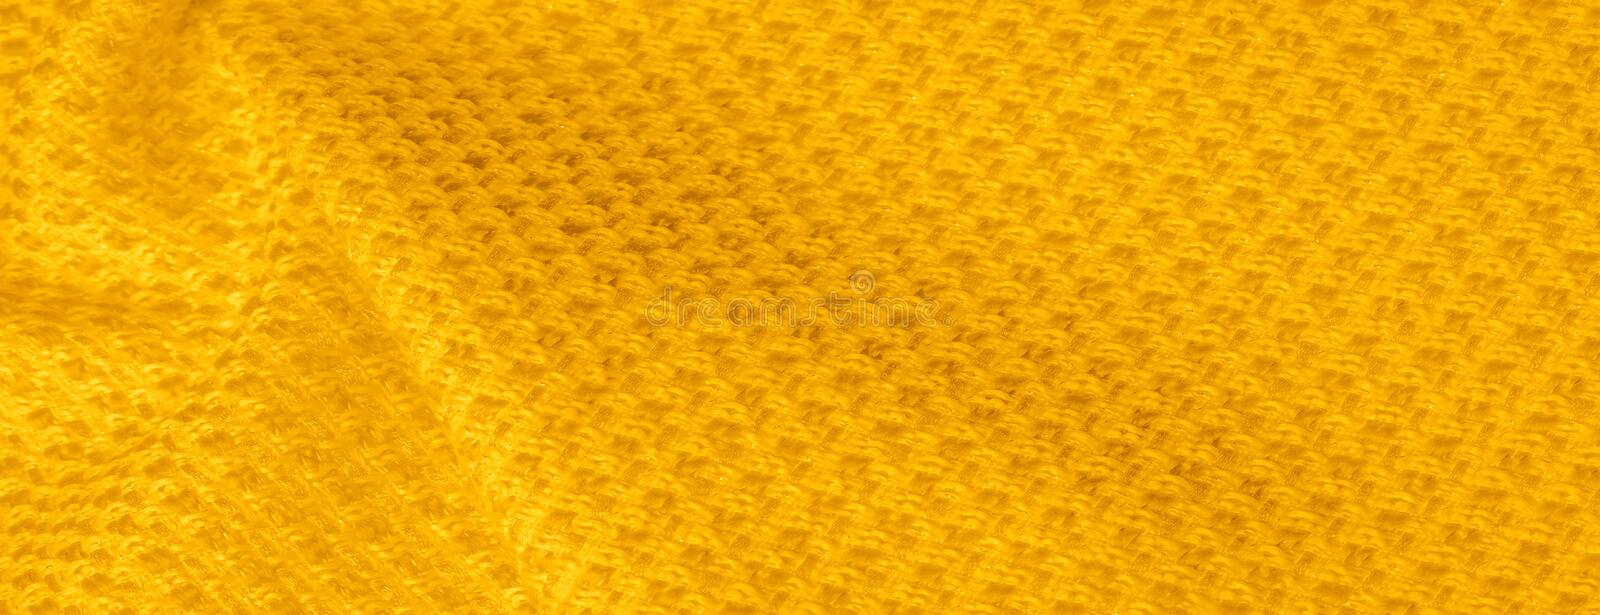 Background texture, pattern. Yellow fabric with metallic sequins. This beautiful lightweight sequined fabric has notes, sequined royalty free stock images